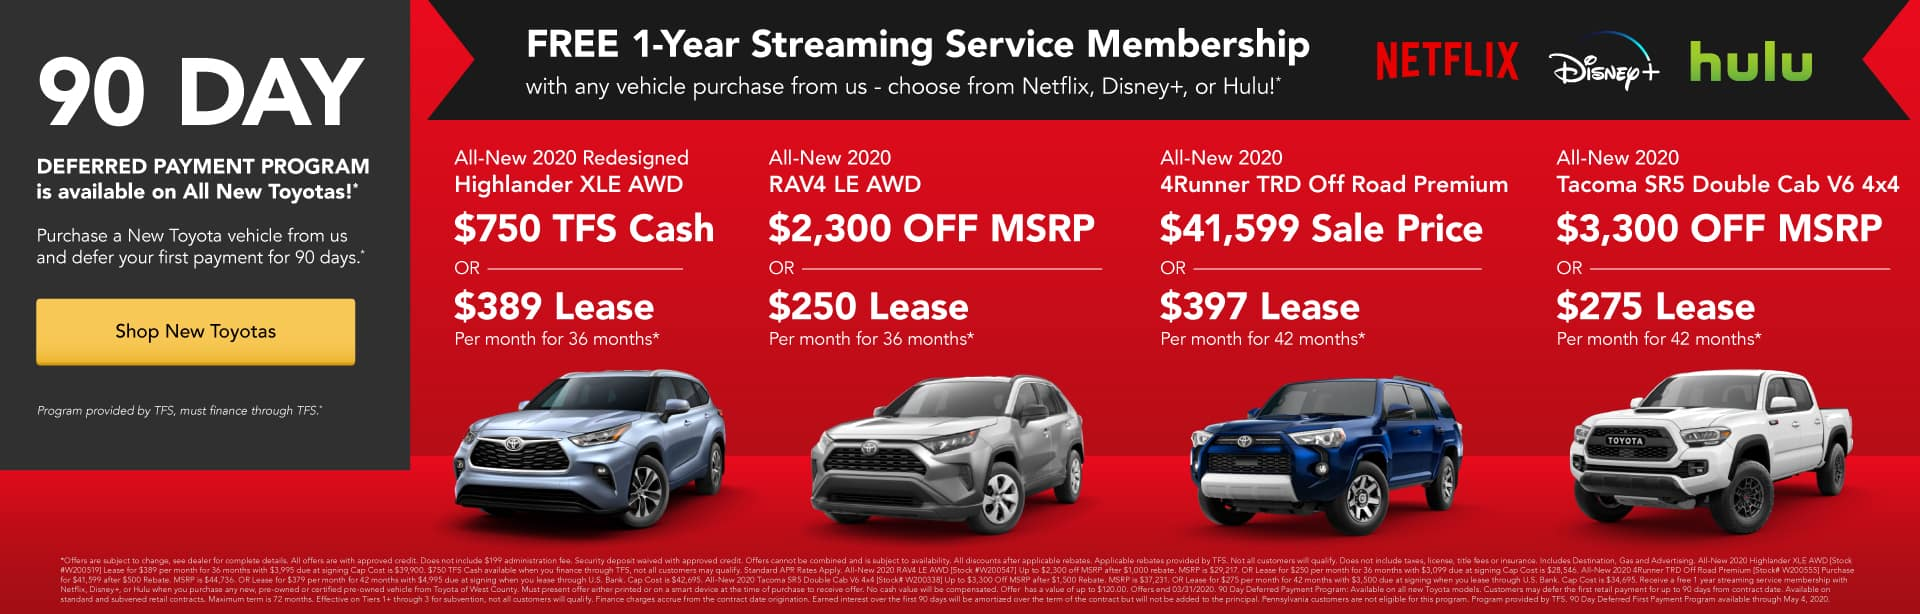 Free 1-Year Streaming Service Membership with any vehicle purchase from us!